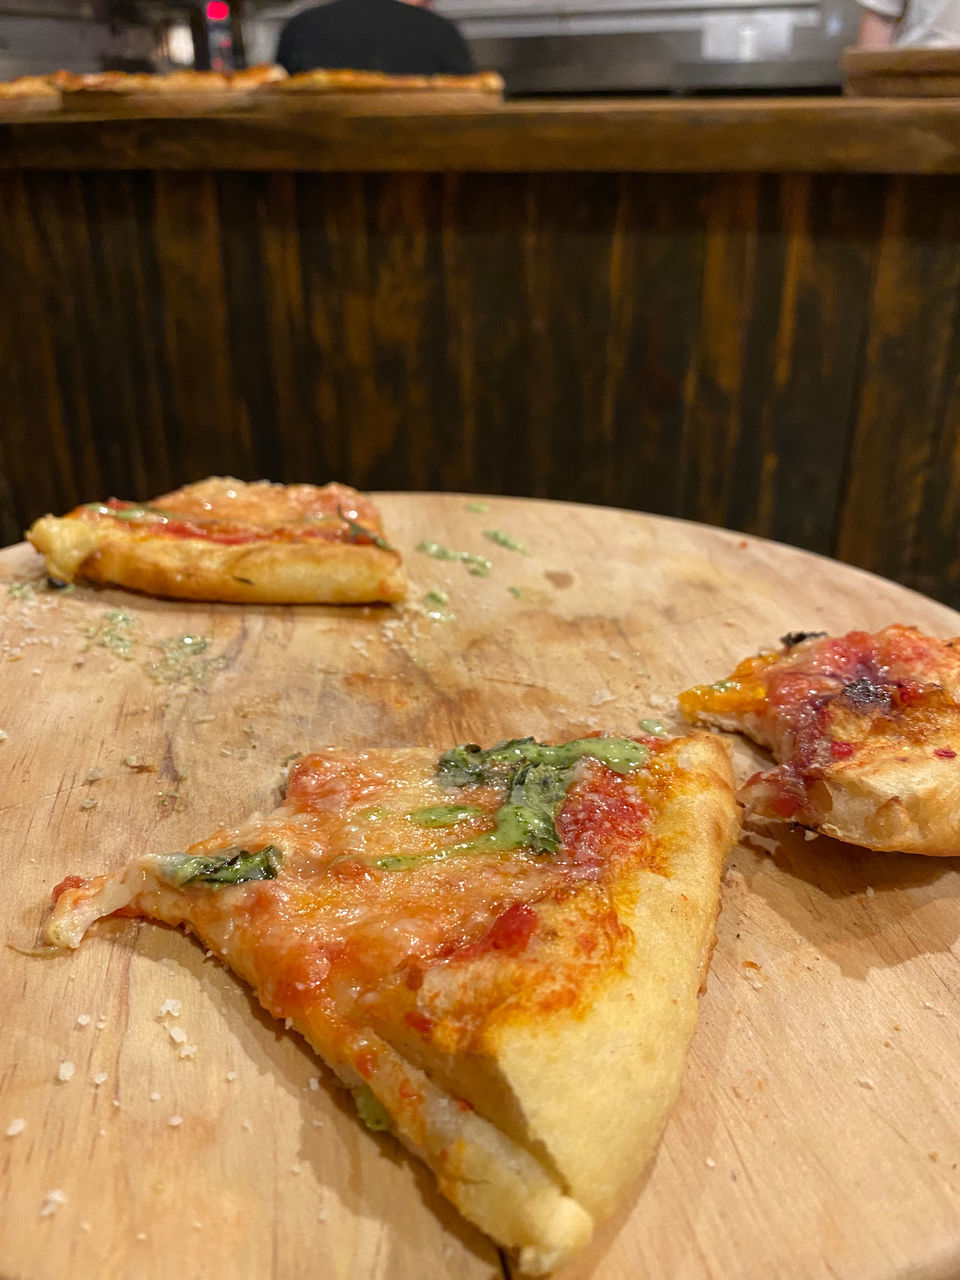 CLOSE-UP OF PIZZA ON CUTTING BOARD ON TABLE